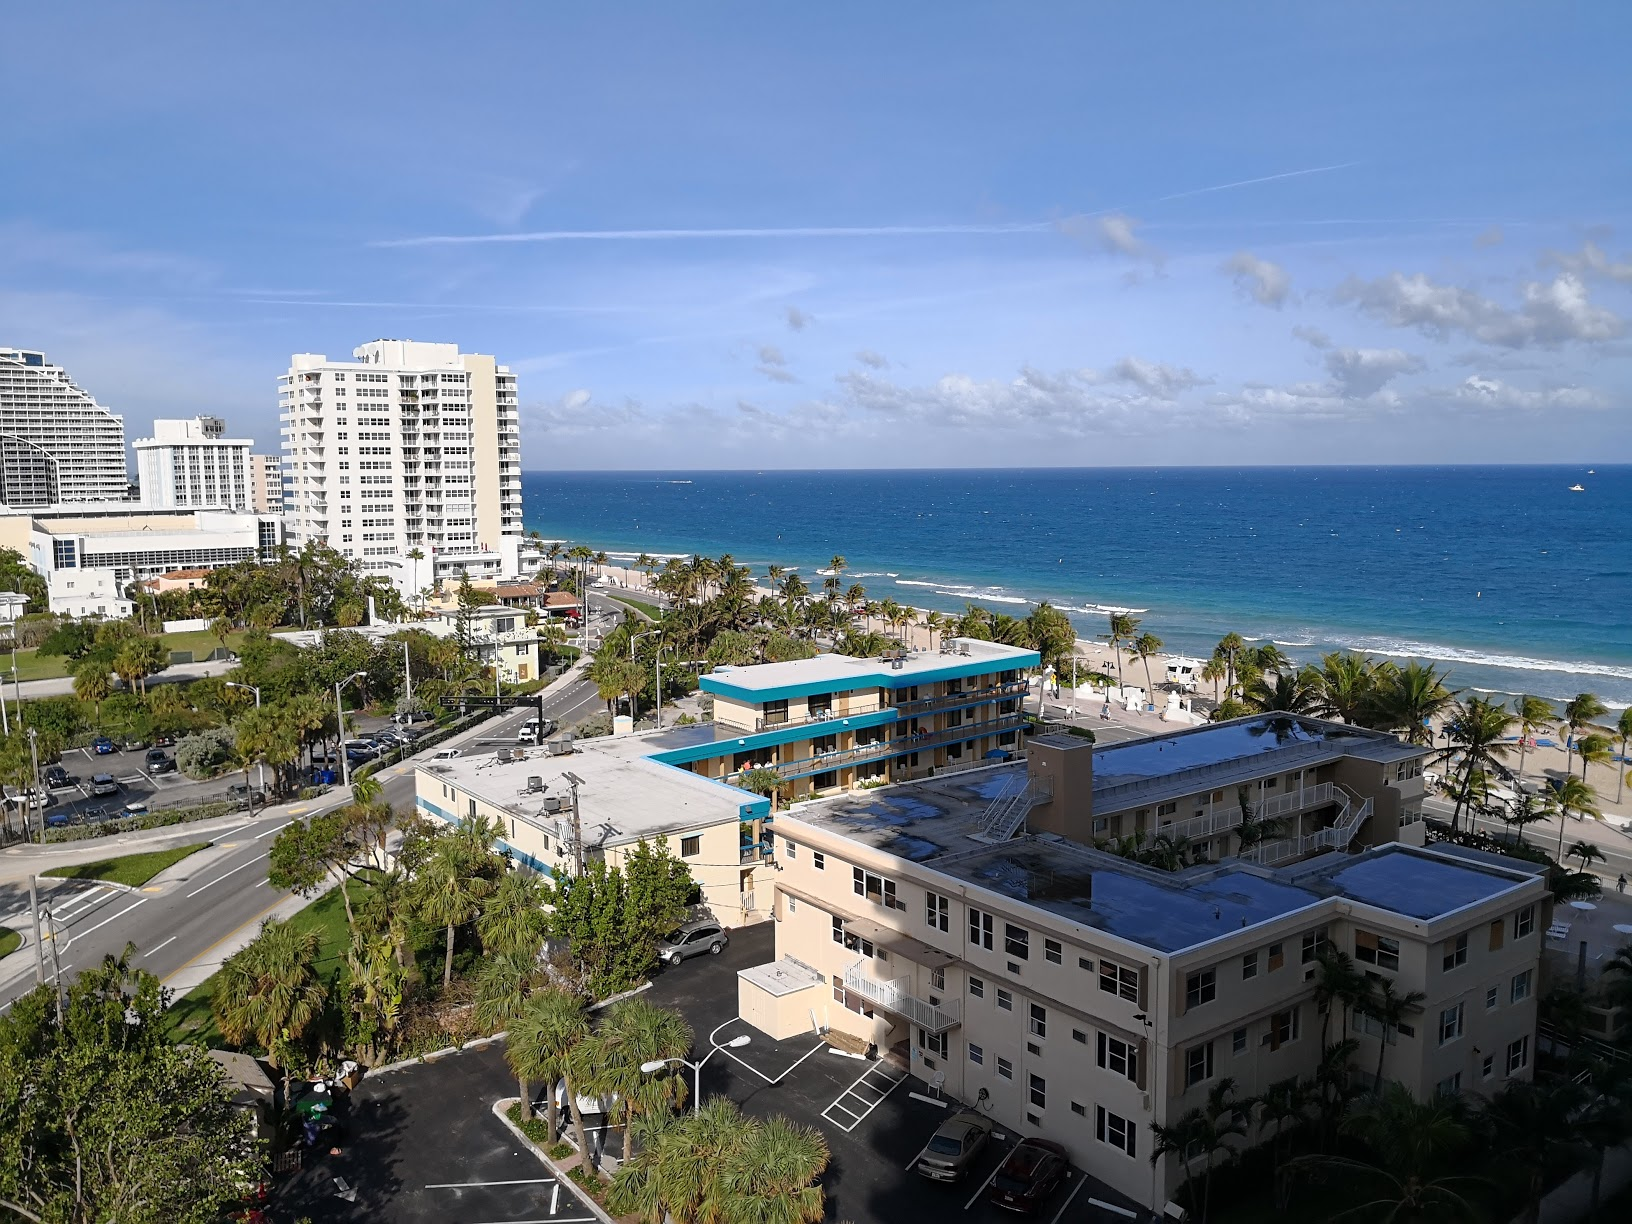 The view from my room at Ritz Carlton Fort Lauderdale!